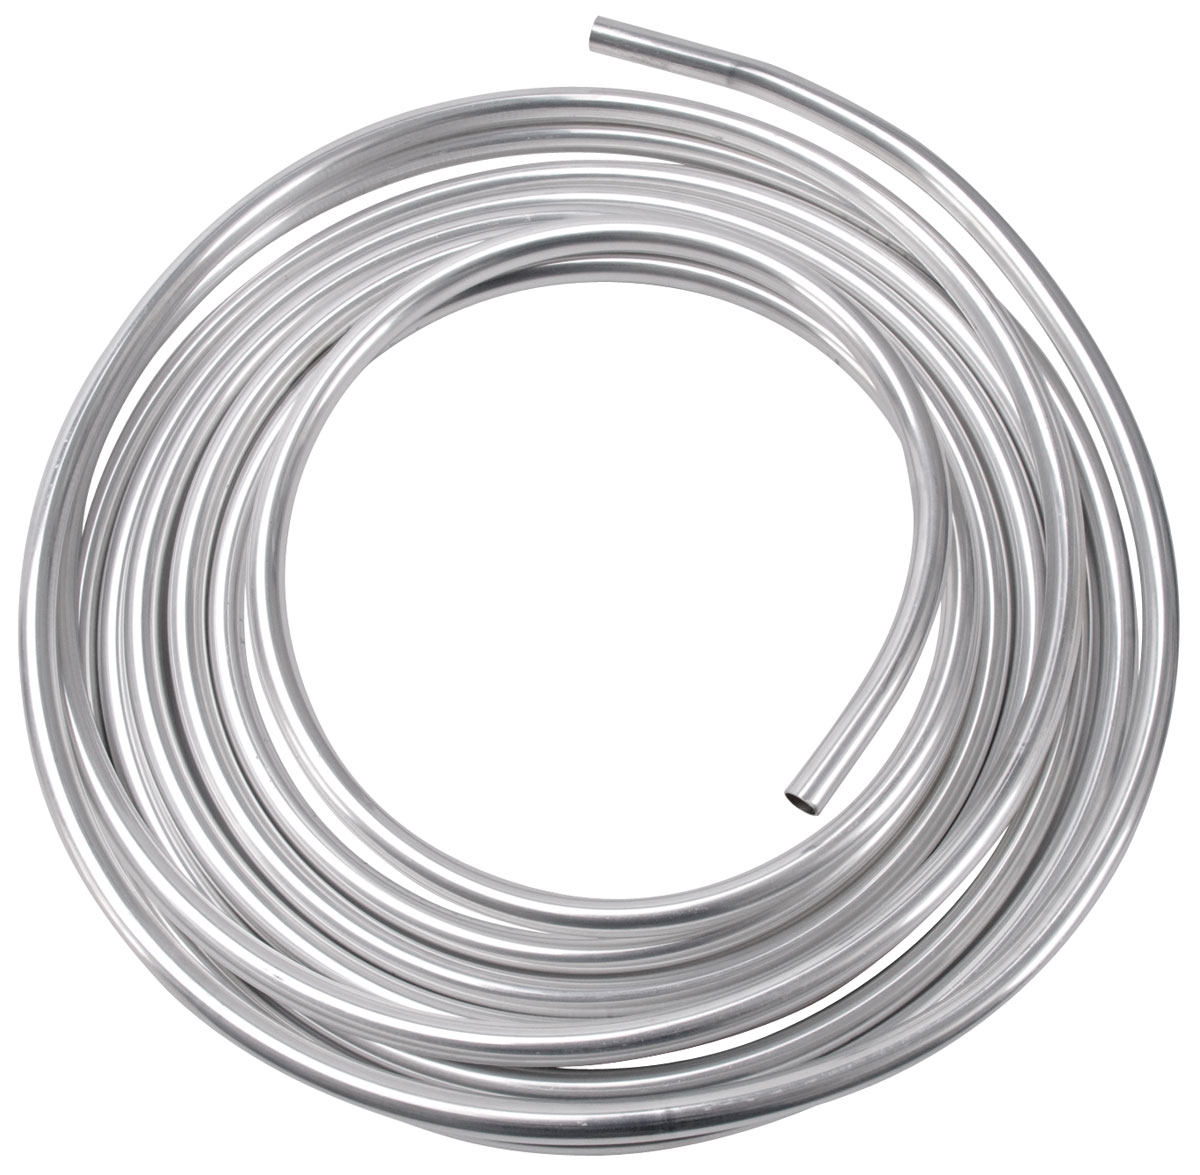 Gto Fuel Lines Russell Aluminum 1 2 Natural